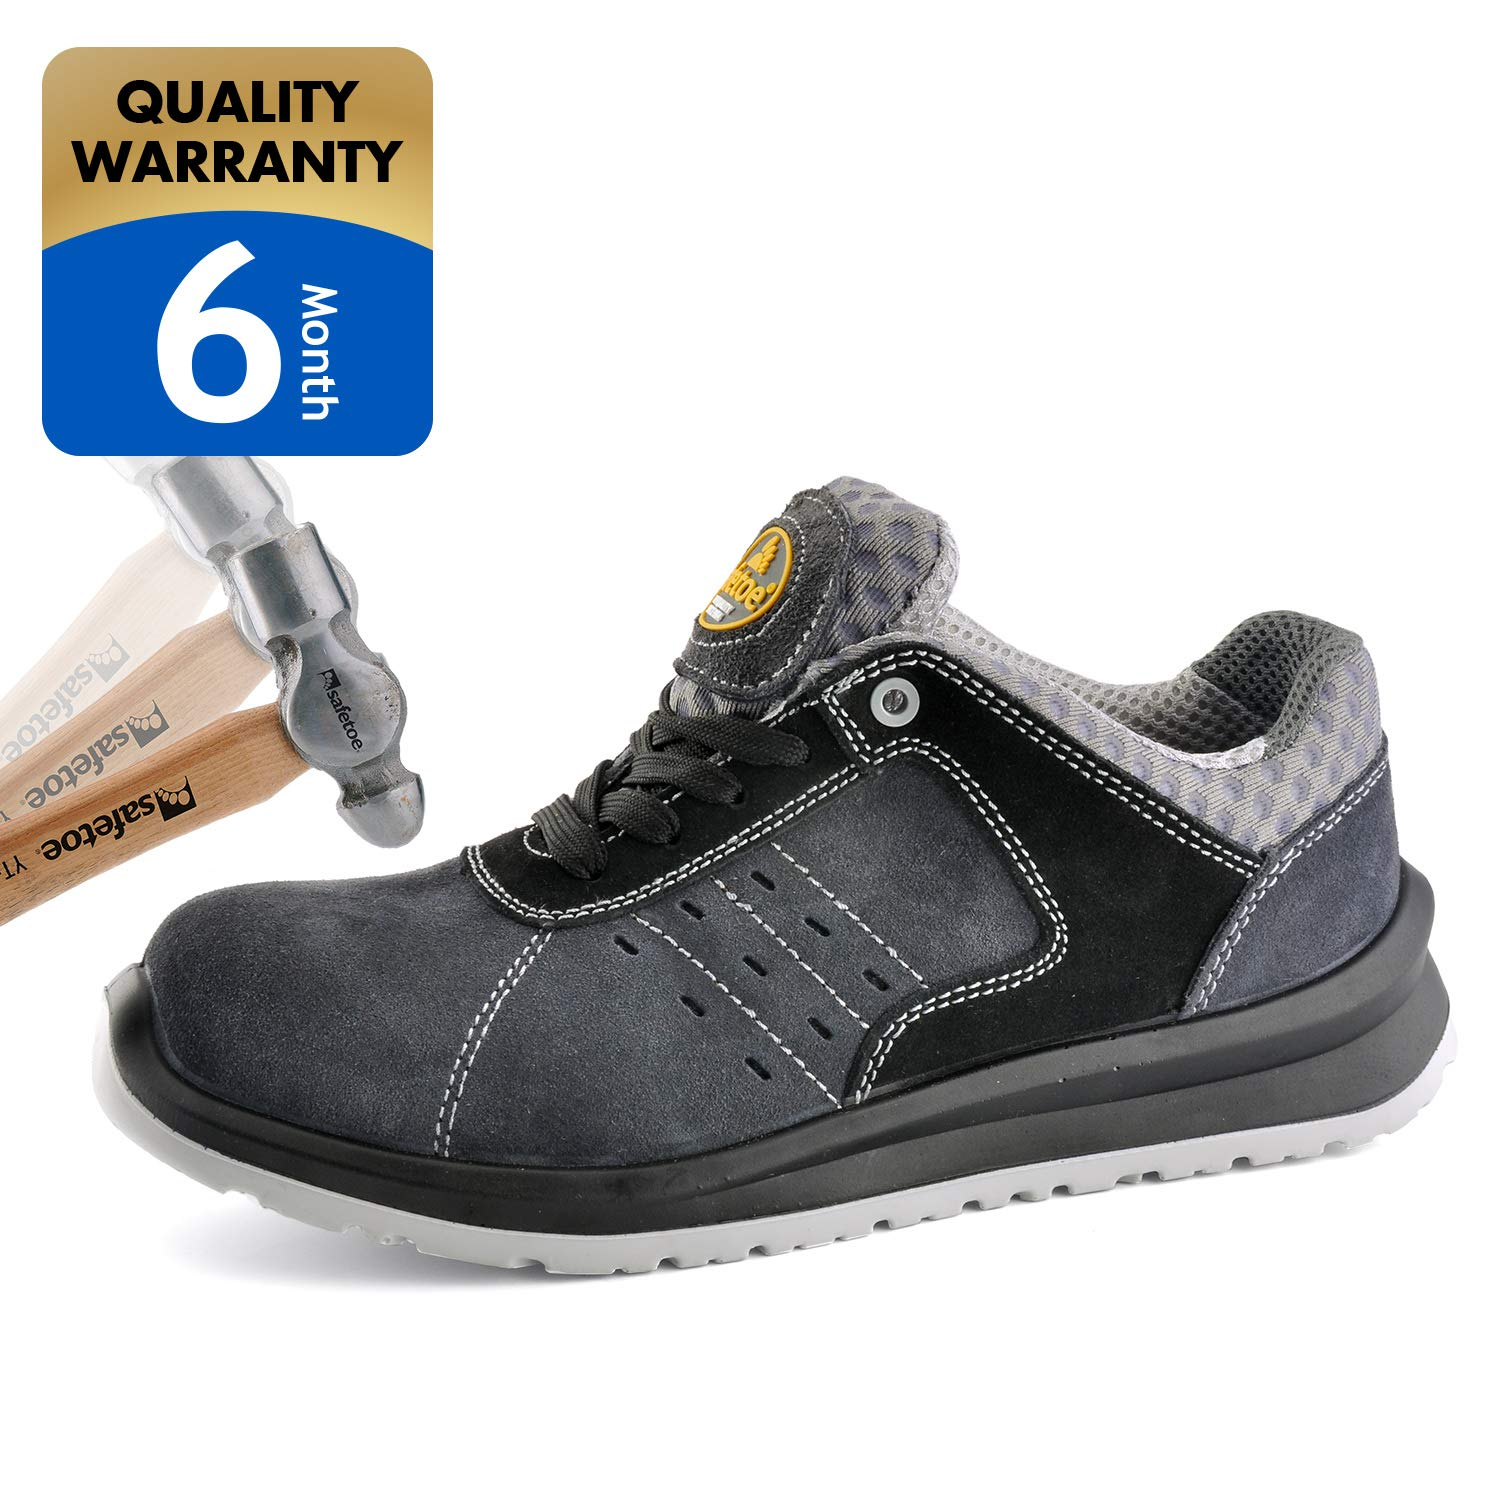 SAFETOE Men's Work Safety Shoes,Lightweight Sport Industrial and Construction Composite Toe Shoes